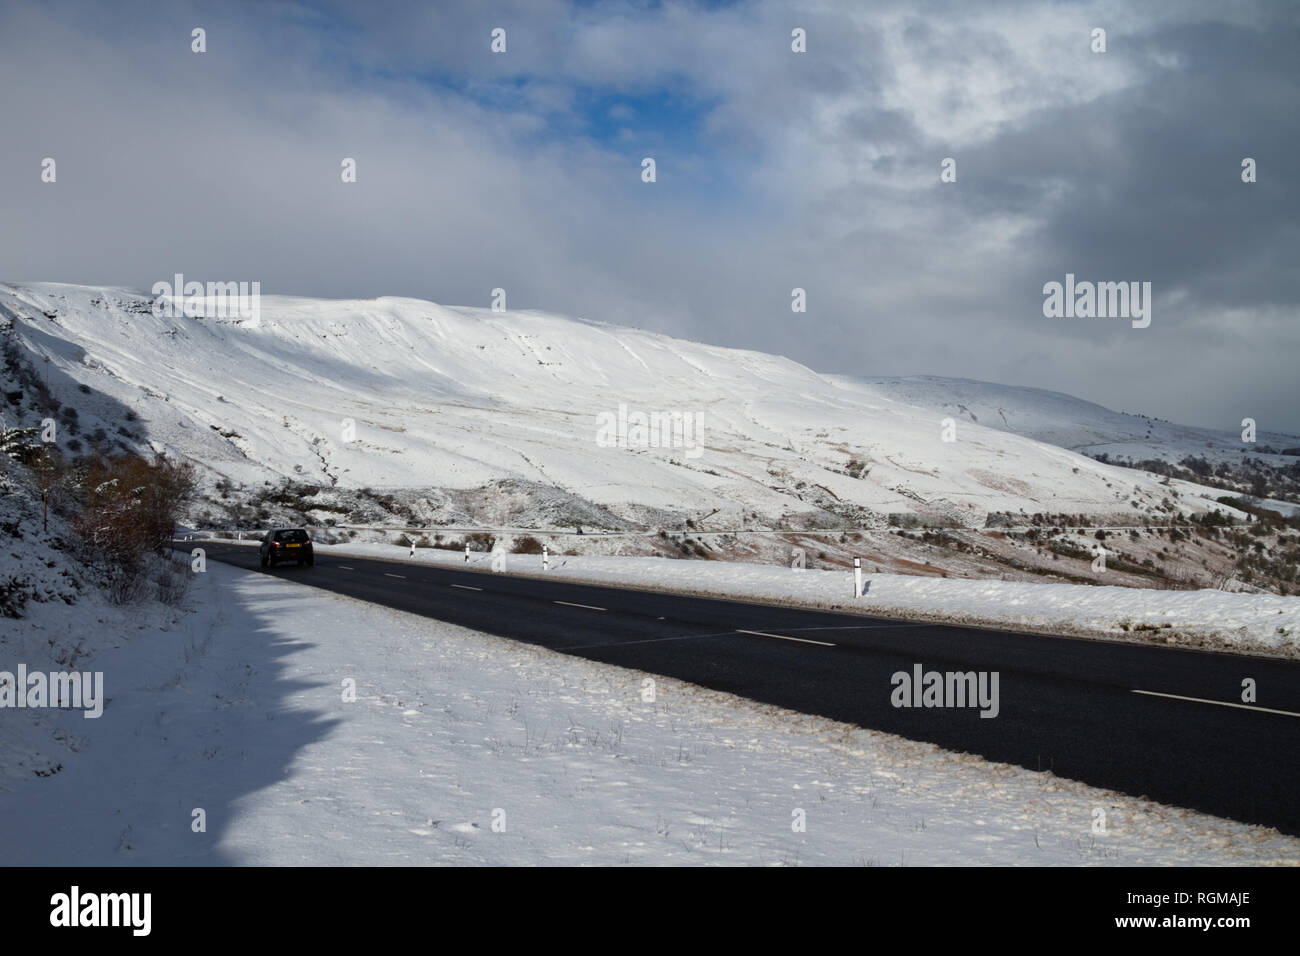 Brecon Beacons, South Wales, UK.  30 January 2019.  UK weather: The Brecon Beacons are covered in snow this morning, after yesterday's heavy fall.  Credit: Andrew Bartlett/Alamy Live News. - Stock Image